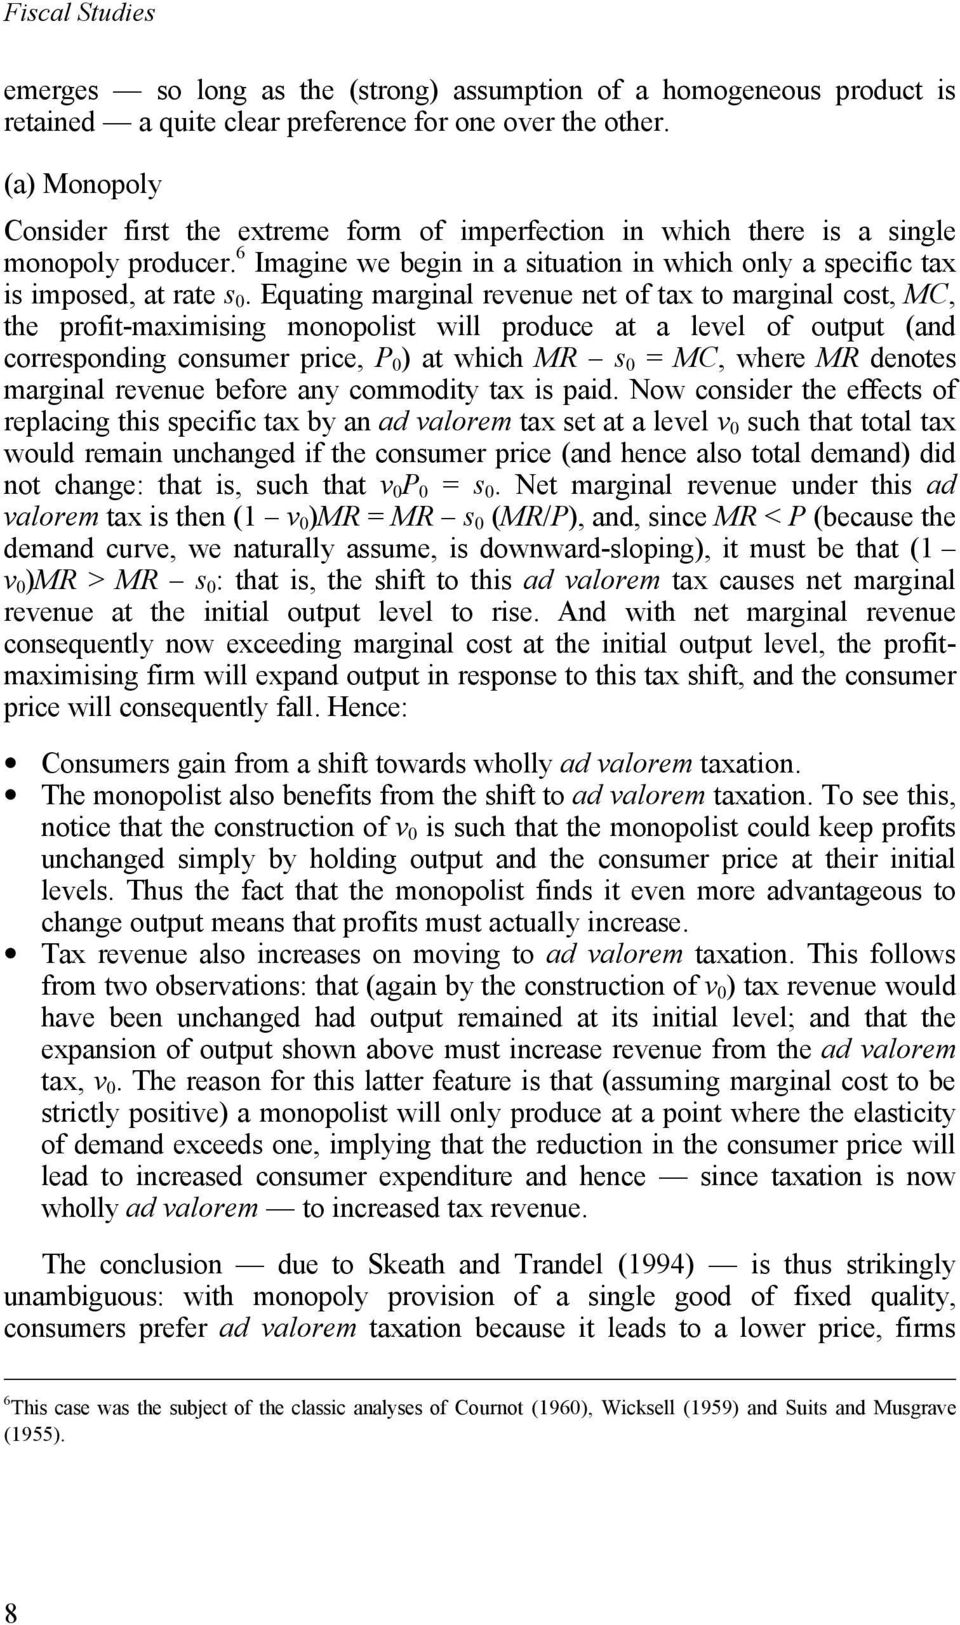 Equating marginal revenue net of tax to marginal cost, MC, the profit-maximising monopolist will produce at a level of output (and corresponding consumer price, P 0 ) at which MR s 0 = MC, where MR